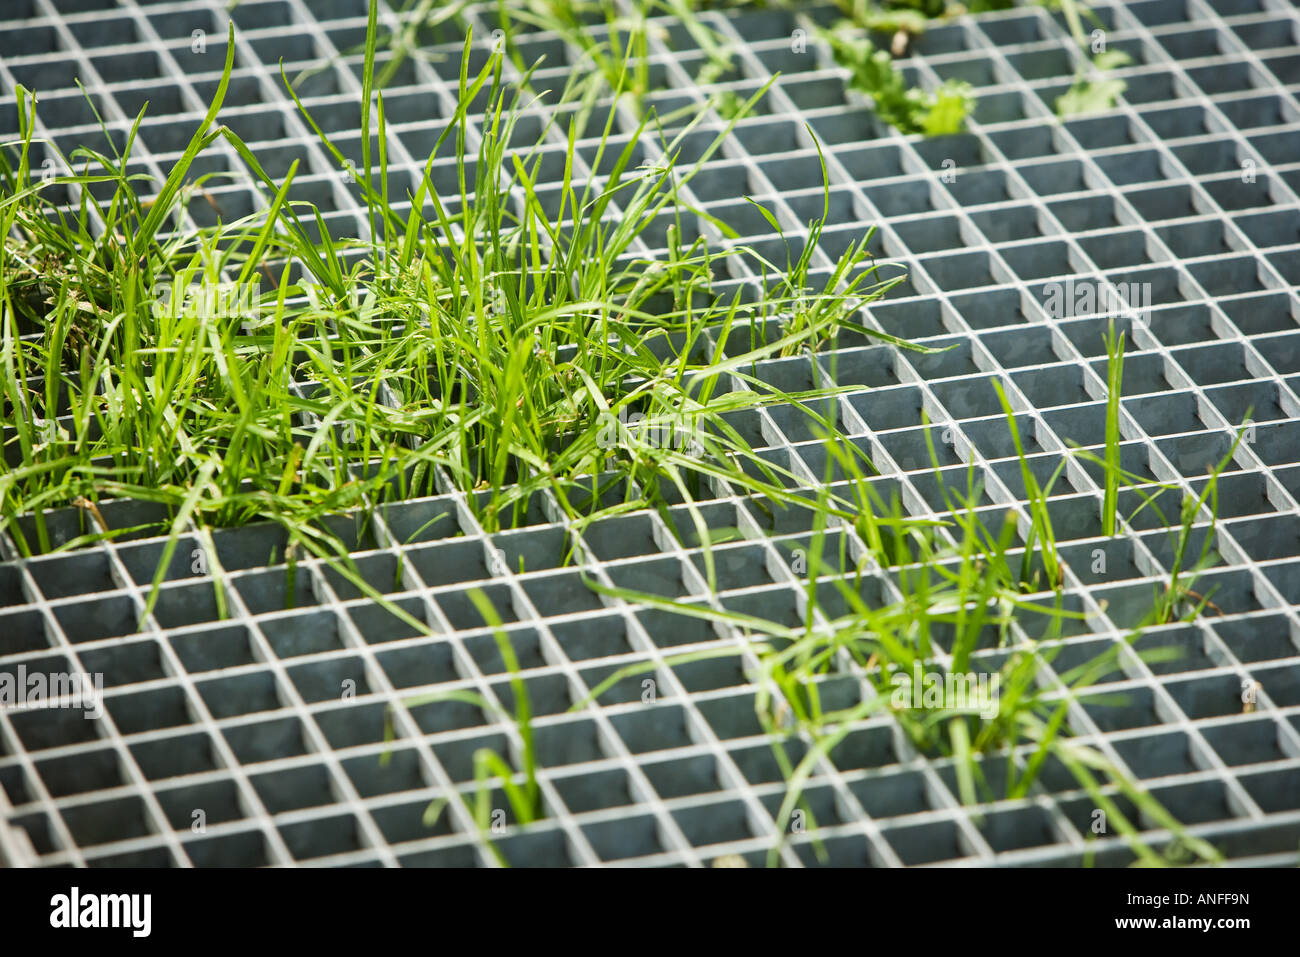 Grass growing through metal grate - Stock Image